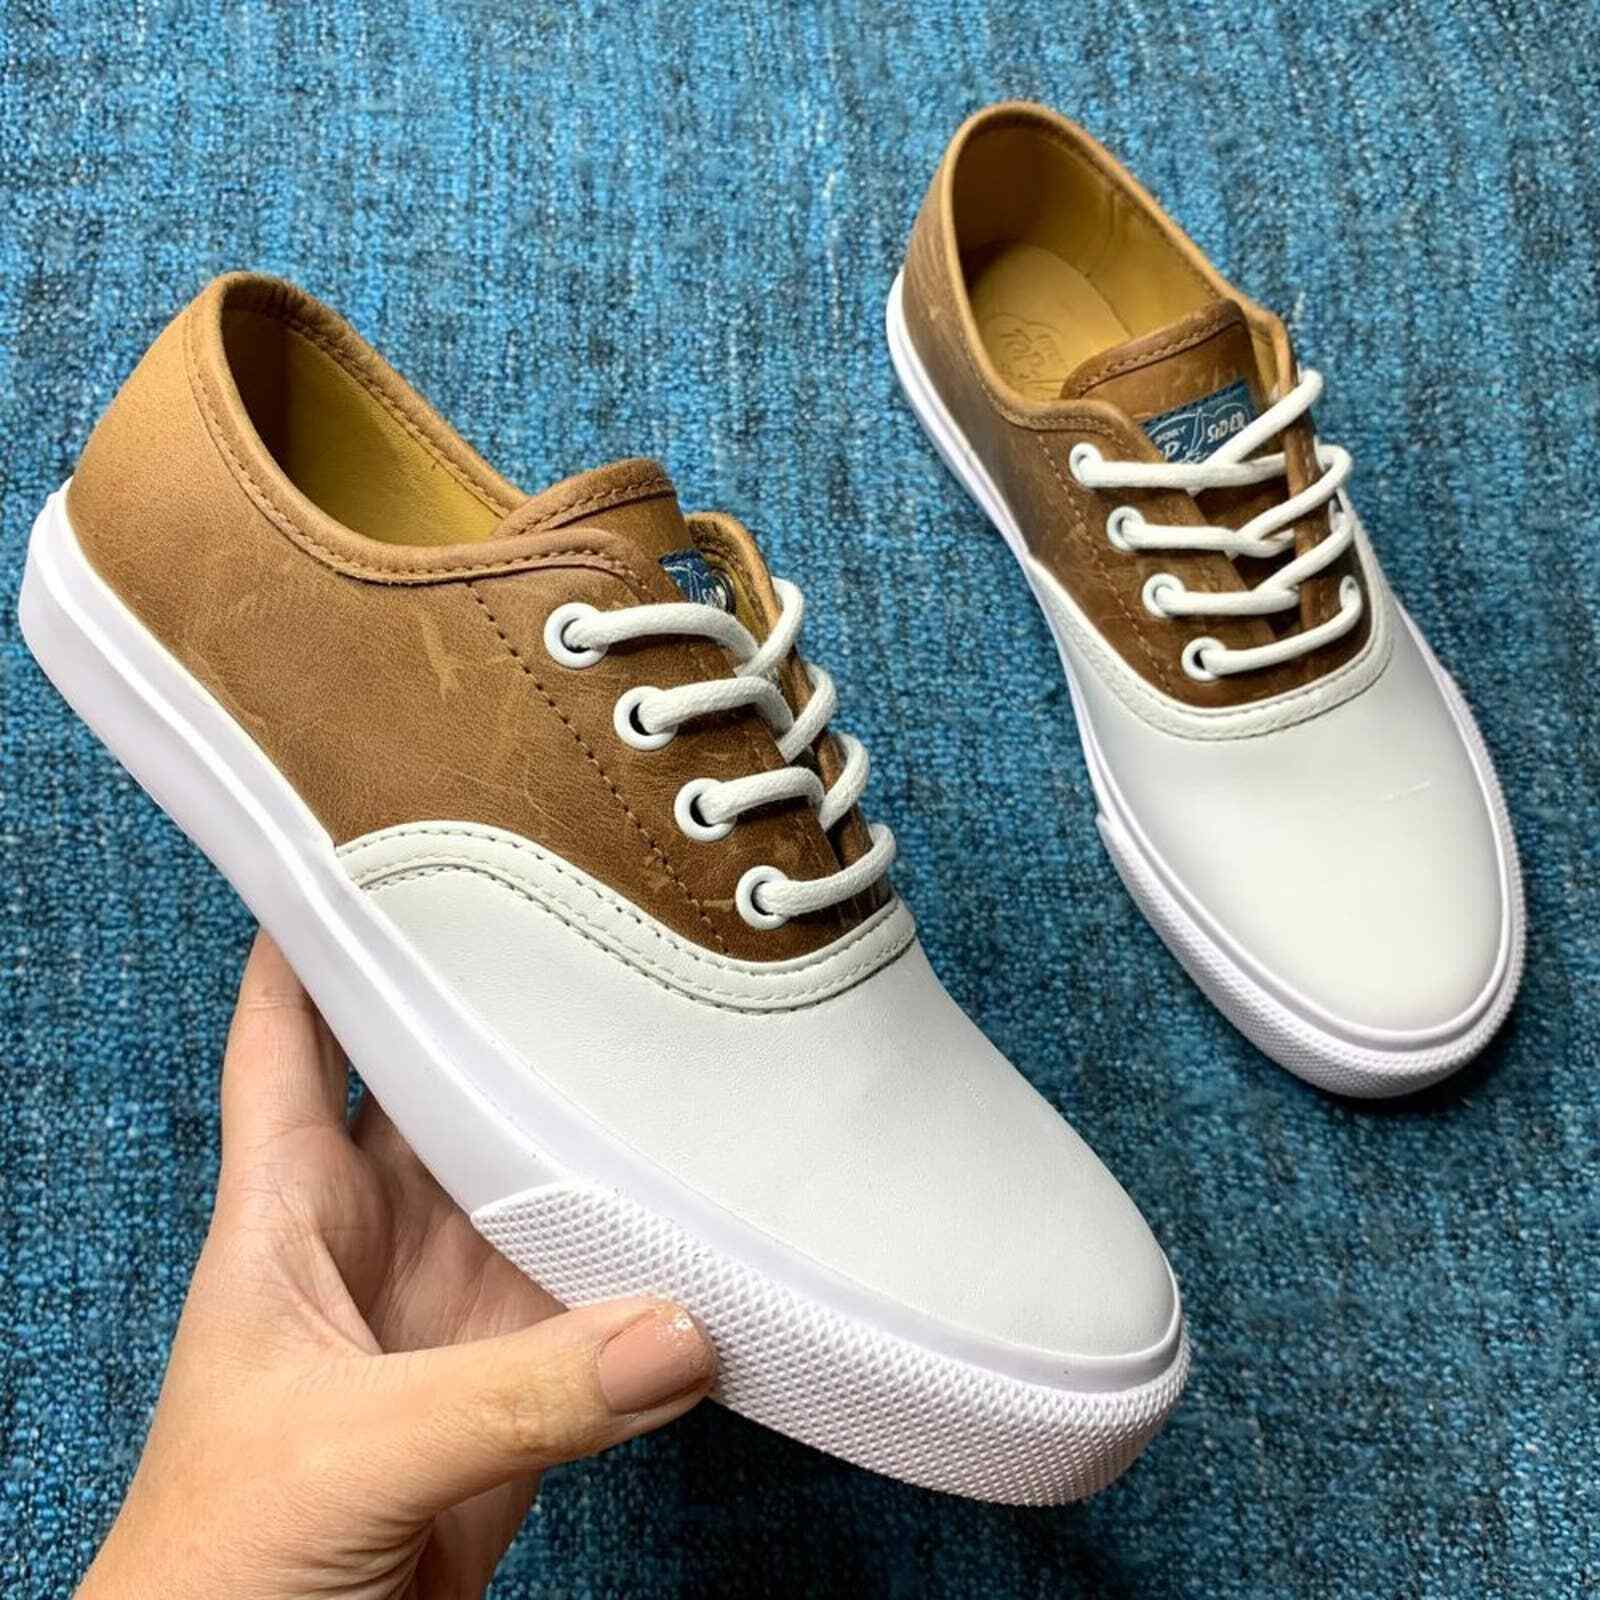 Sperry Top Sider Cloud CVO Leather Sneakers White Brown Size 5 Men or 6.5 Womens